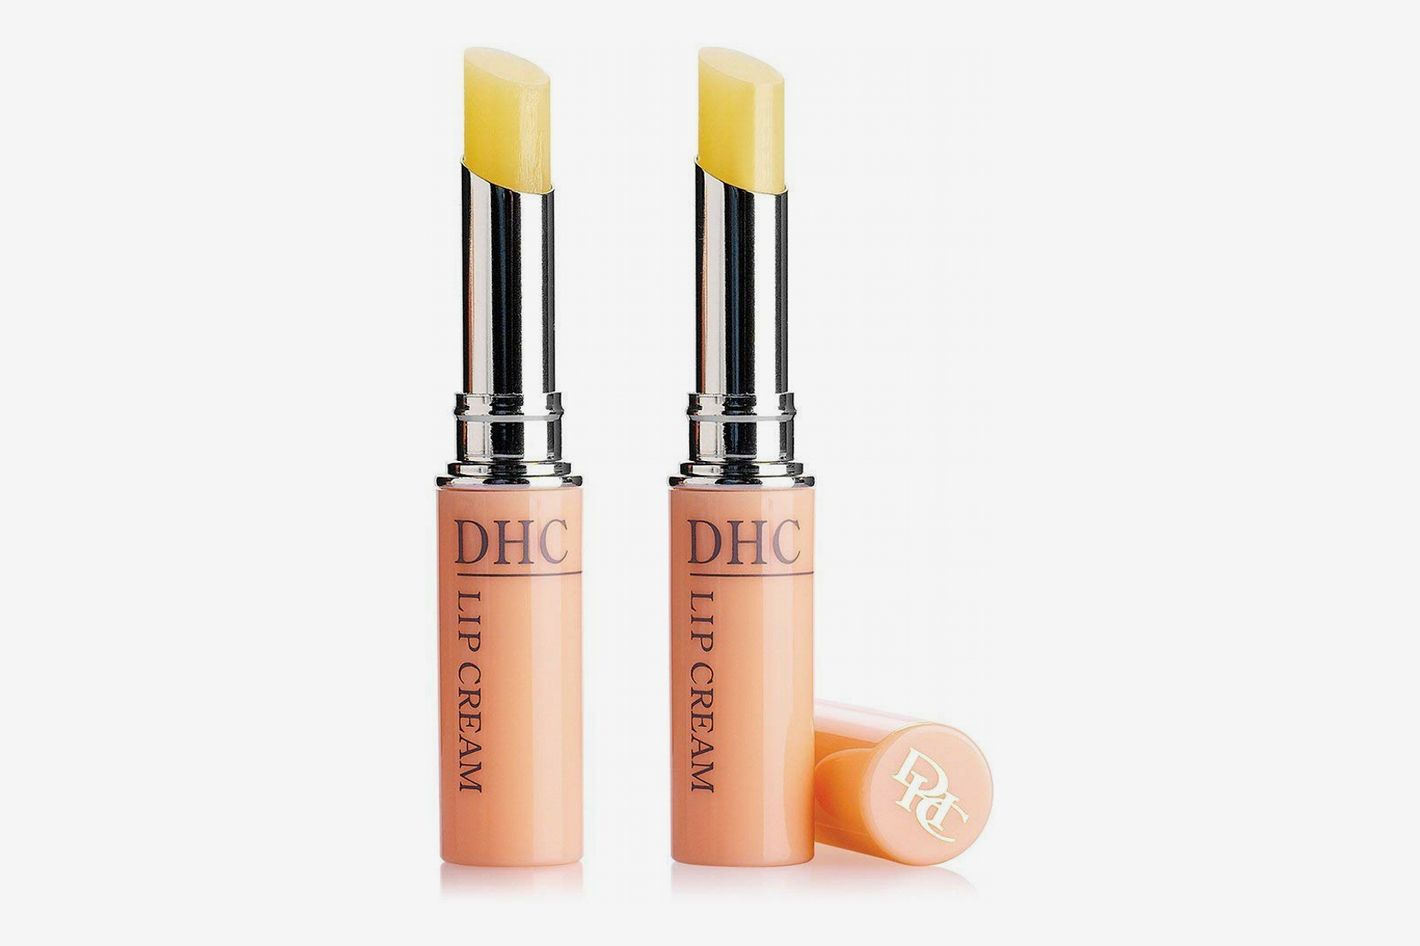 bb0bc4da6e86 13 Best Lip Balms for Chapped and Dry Lips 2019